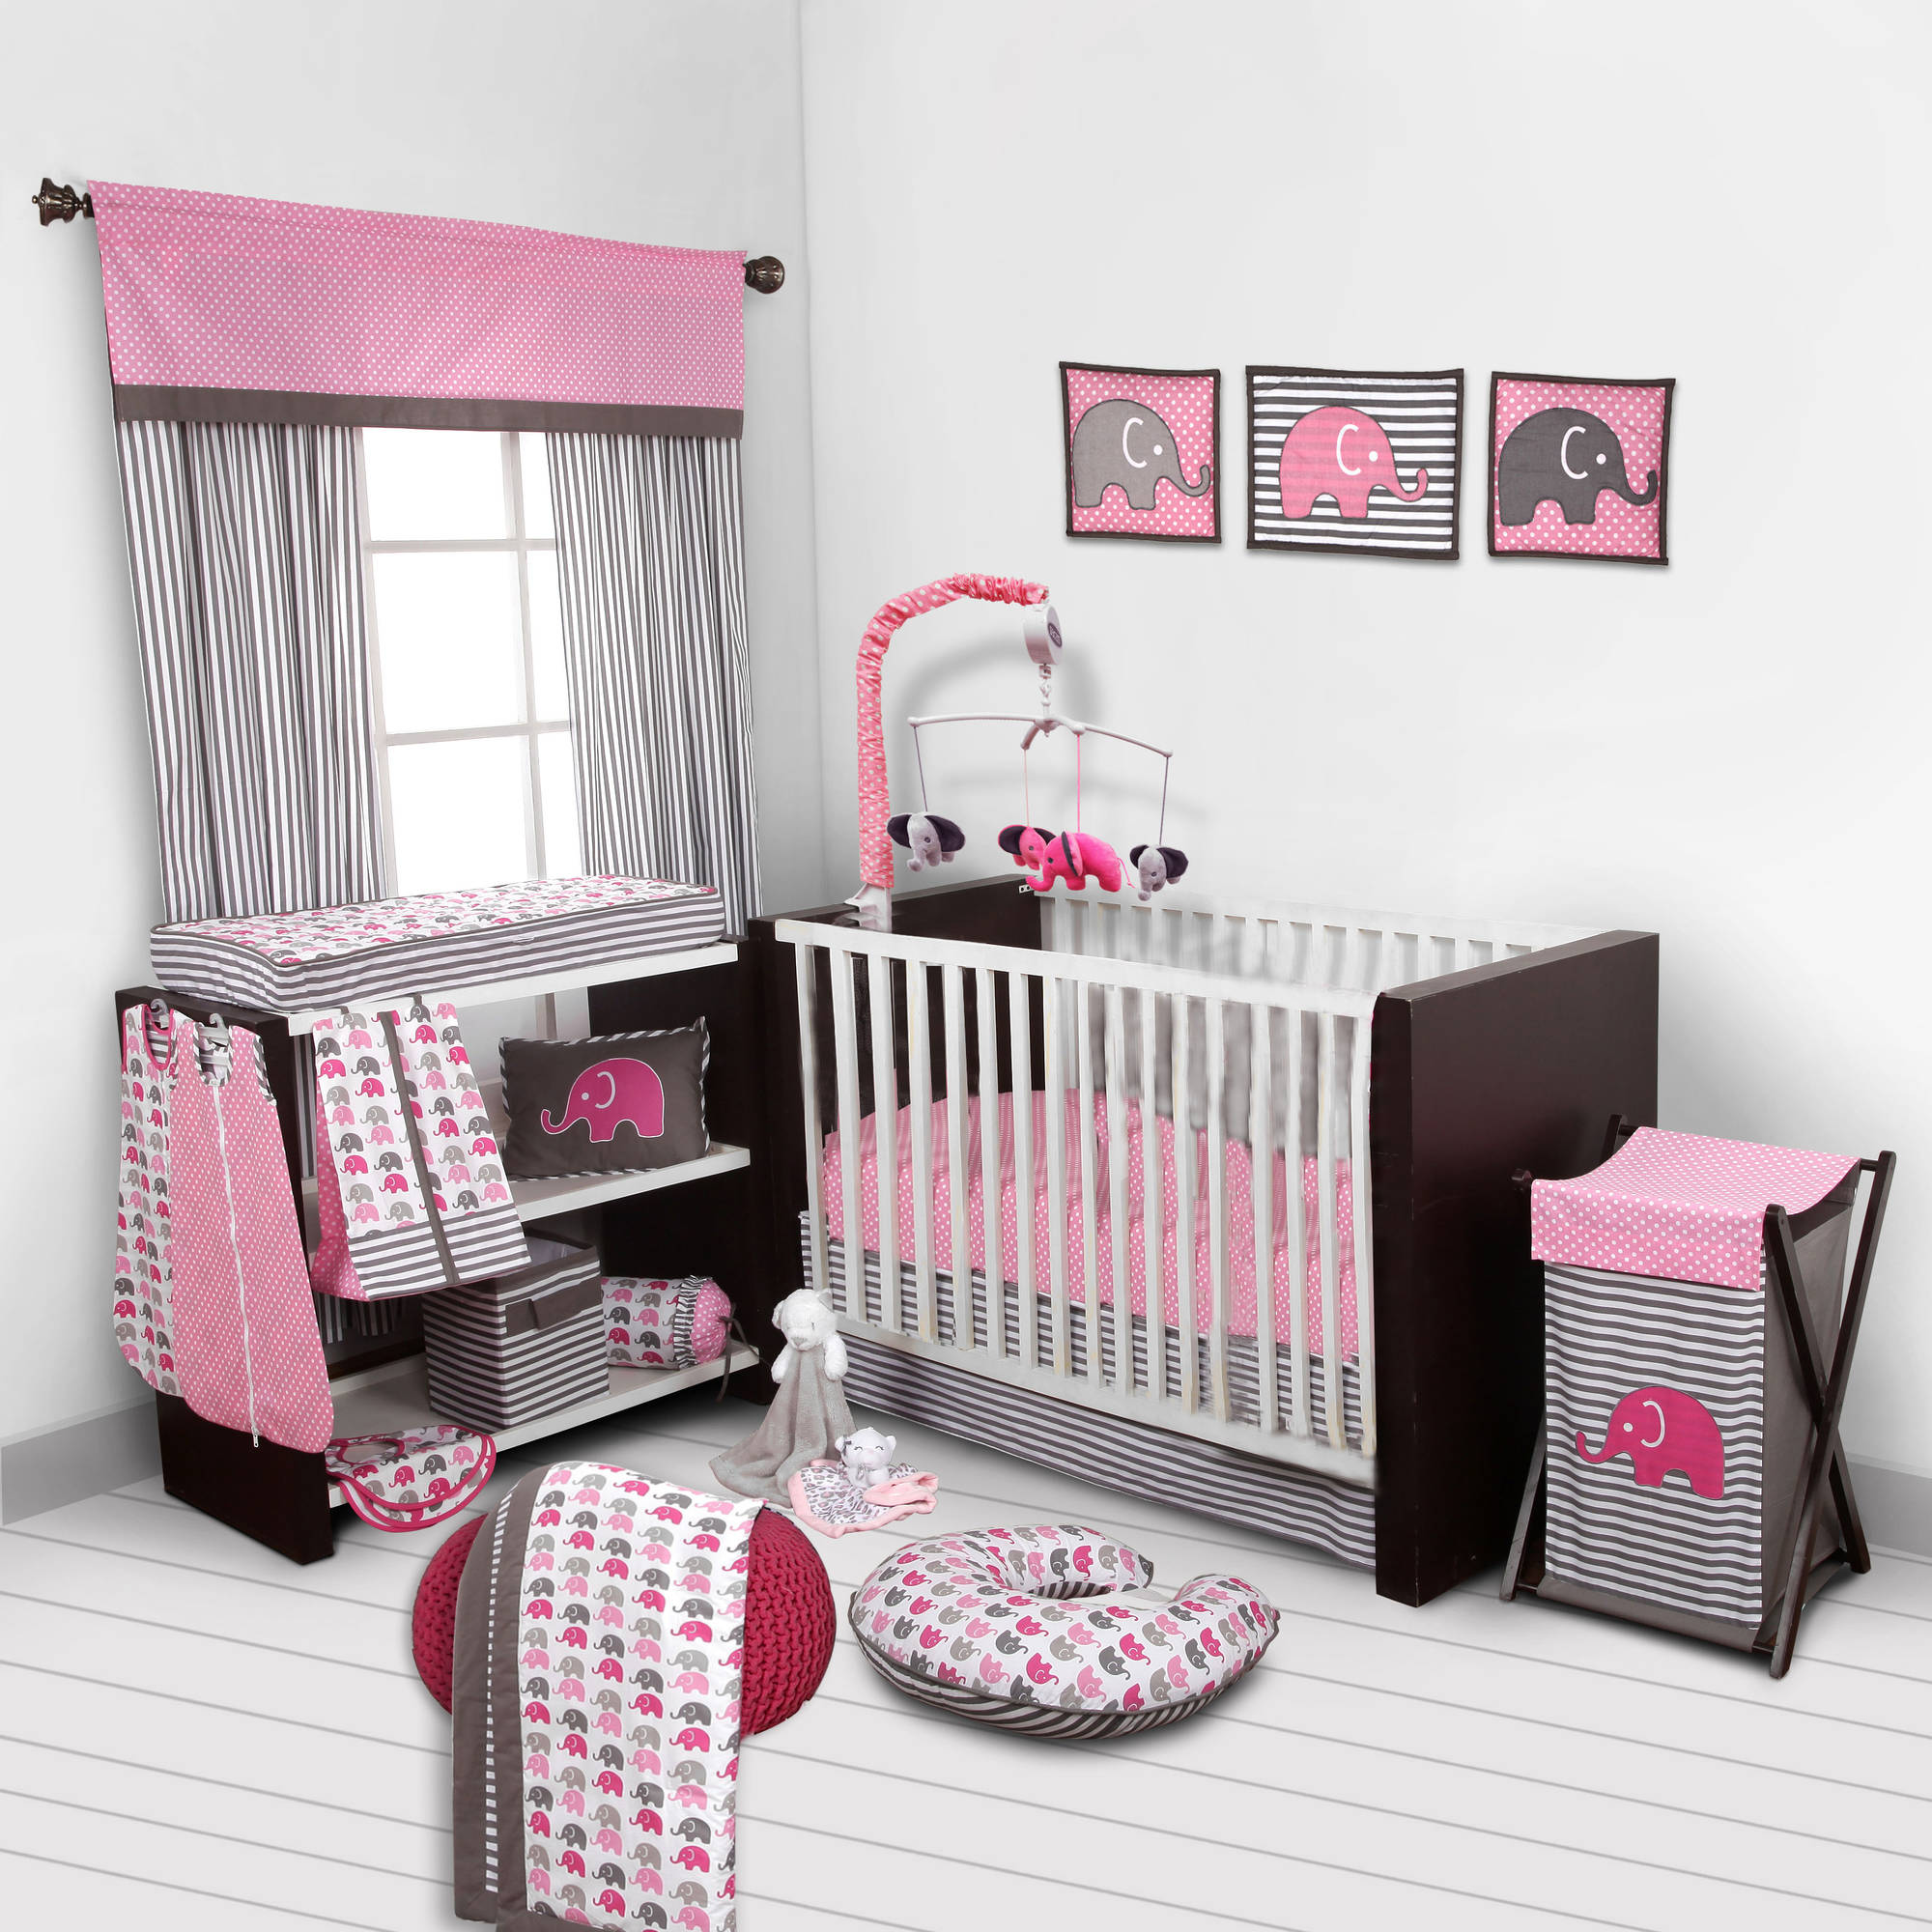 Bacati - Elephants Pink/Gray 10-Piece Nursery in a Bag Crib Bedding Set 100% Cotton Percale Girls Crib Bedding Set with 2 crib fitted sheets (Bumper Pad not included) for US standard Cribs